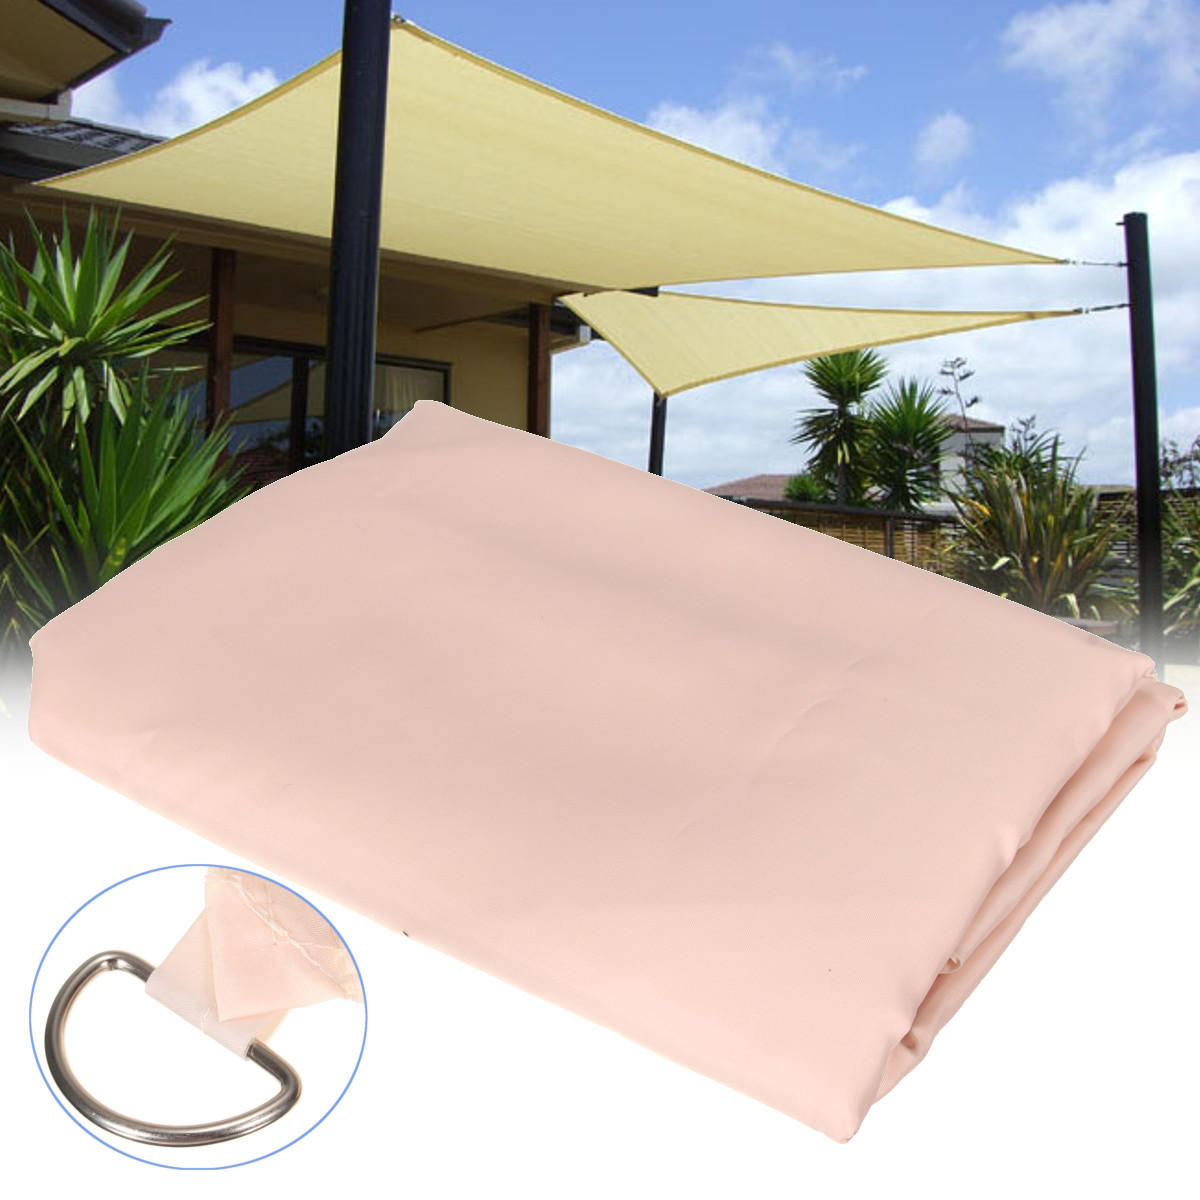 Window Canopy 2x3m Patio Outdoor Shade Sail Garden Cover Mesh Net Polyester Car Window Awning Carport Canopy